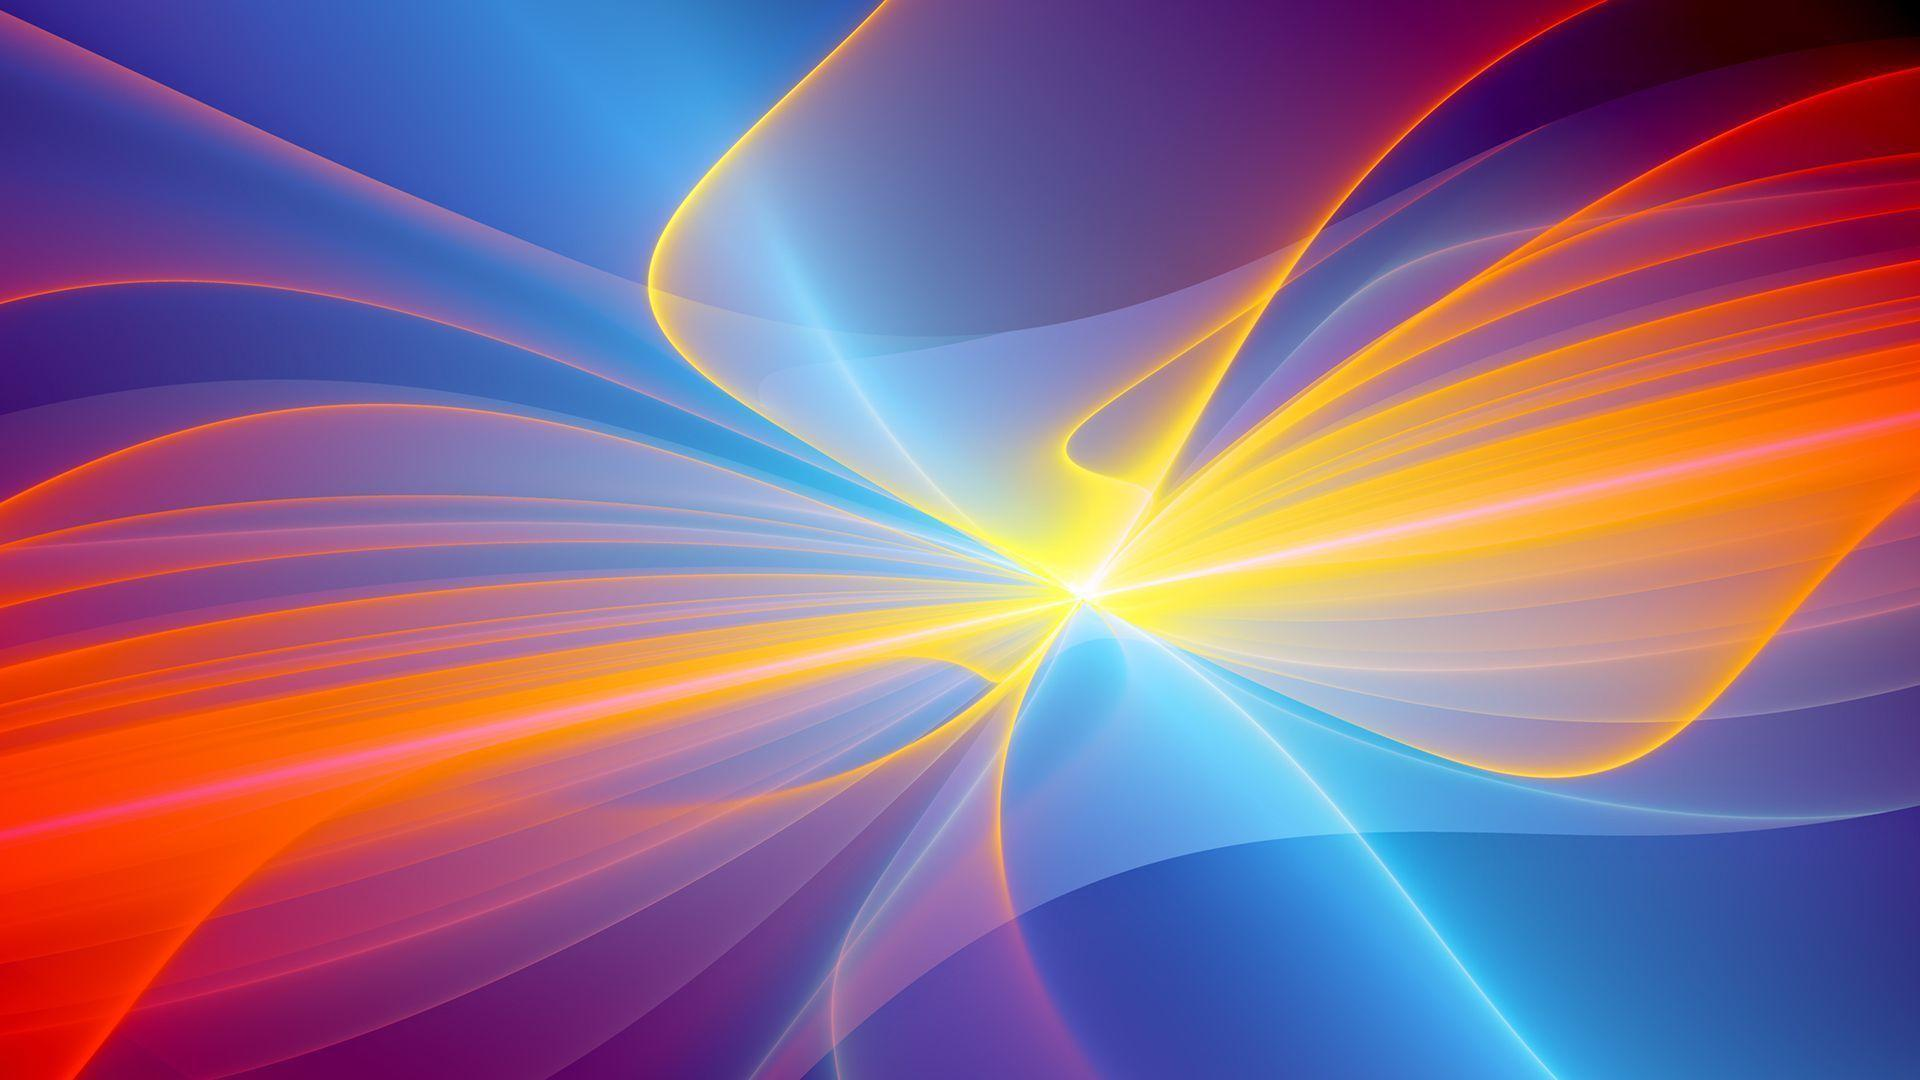 Abstract Desktop Wallpapers 568 Wallpapers HD